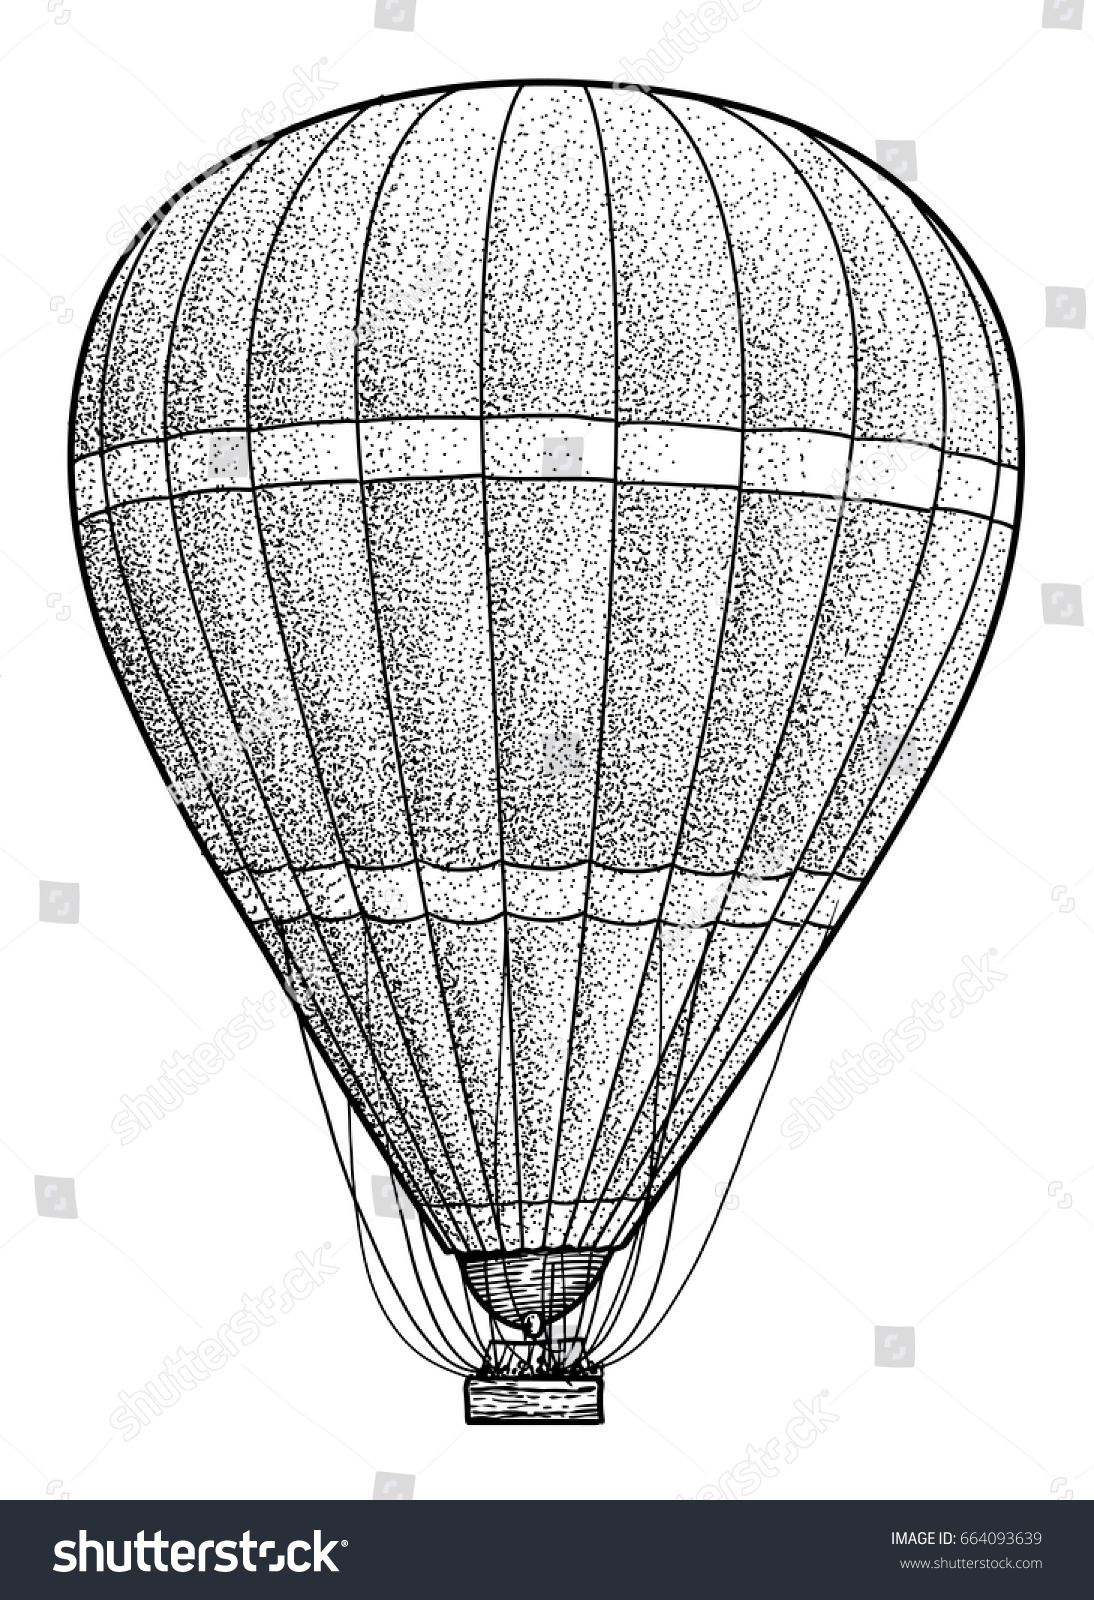 pin drawn hot air balloon line drawing 1. drawing how to draw ...